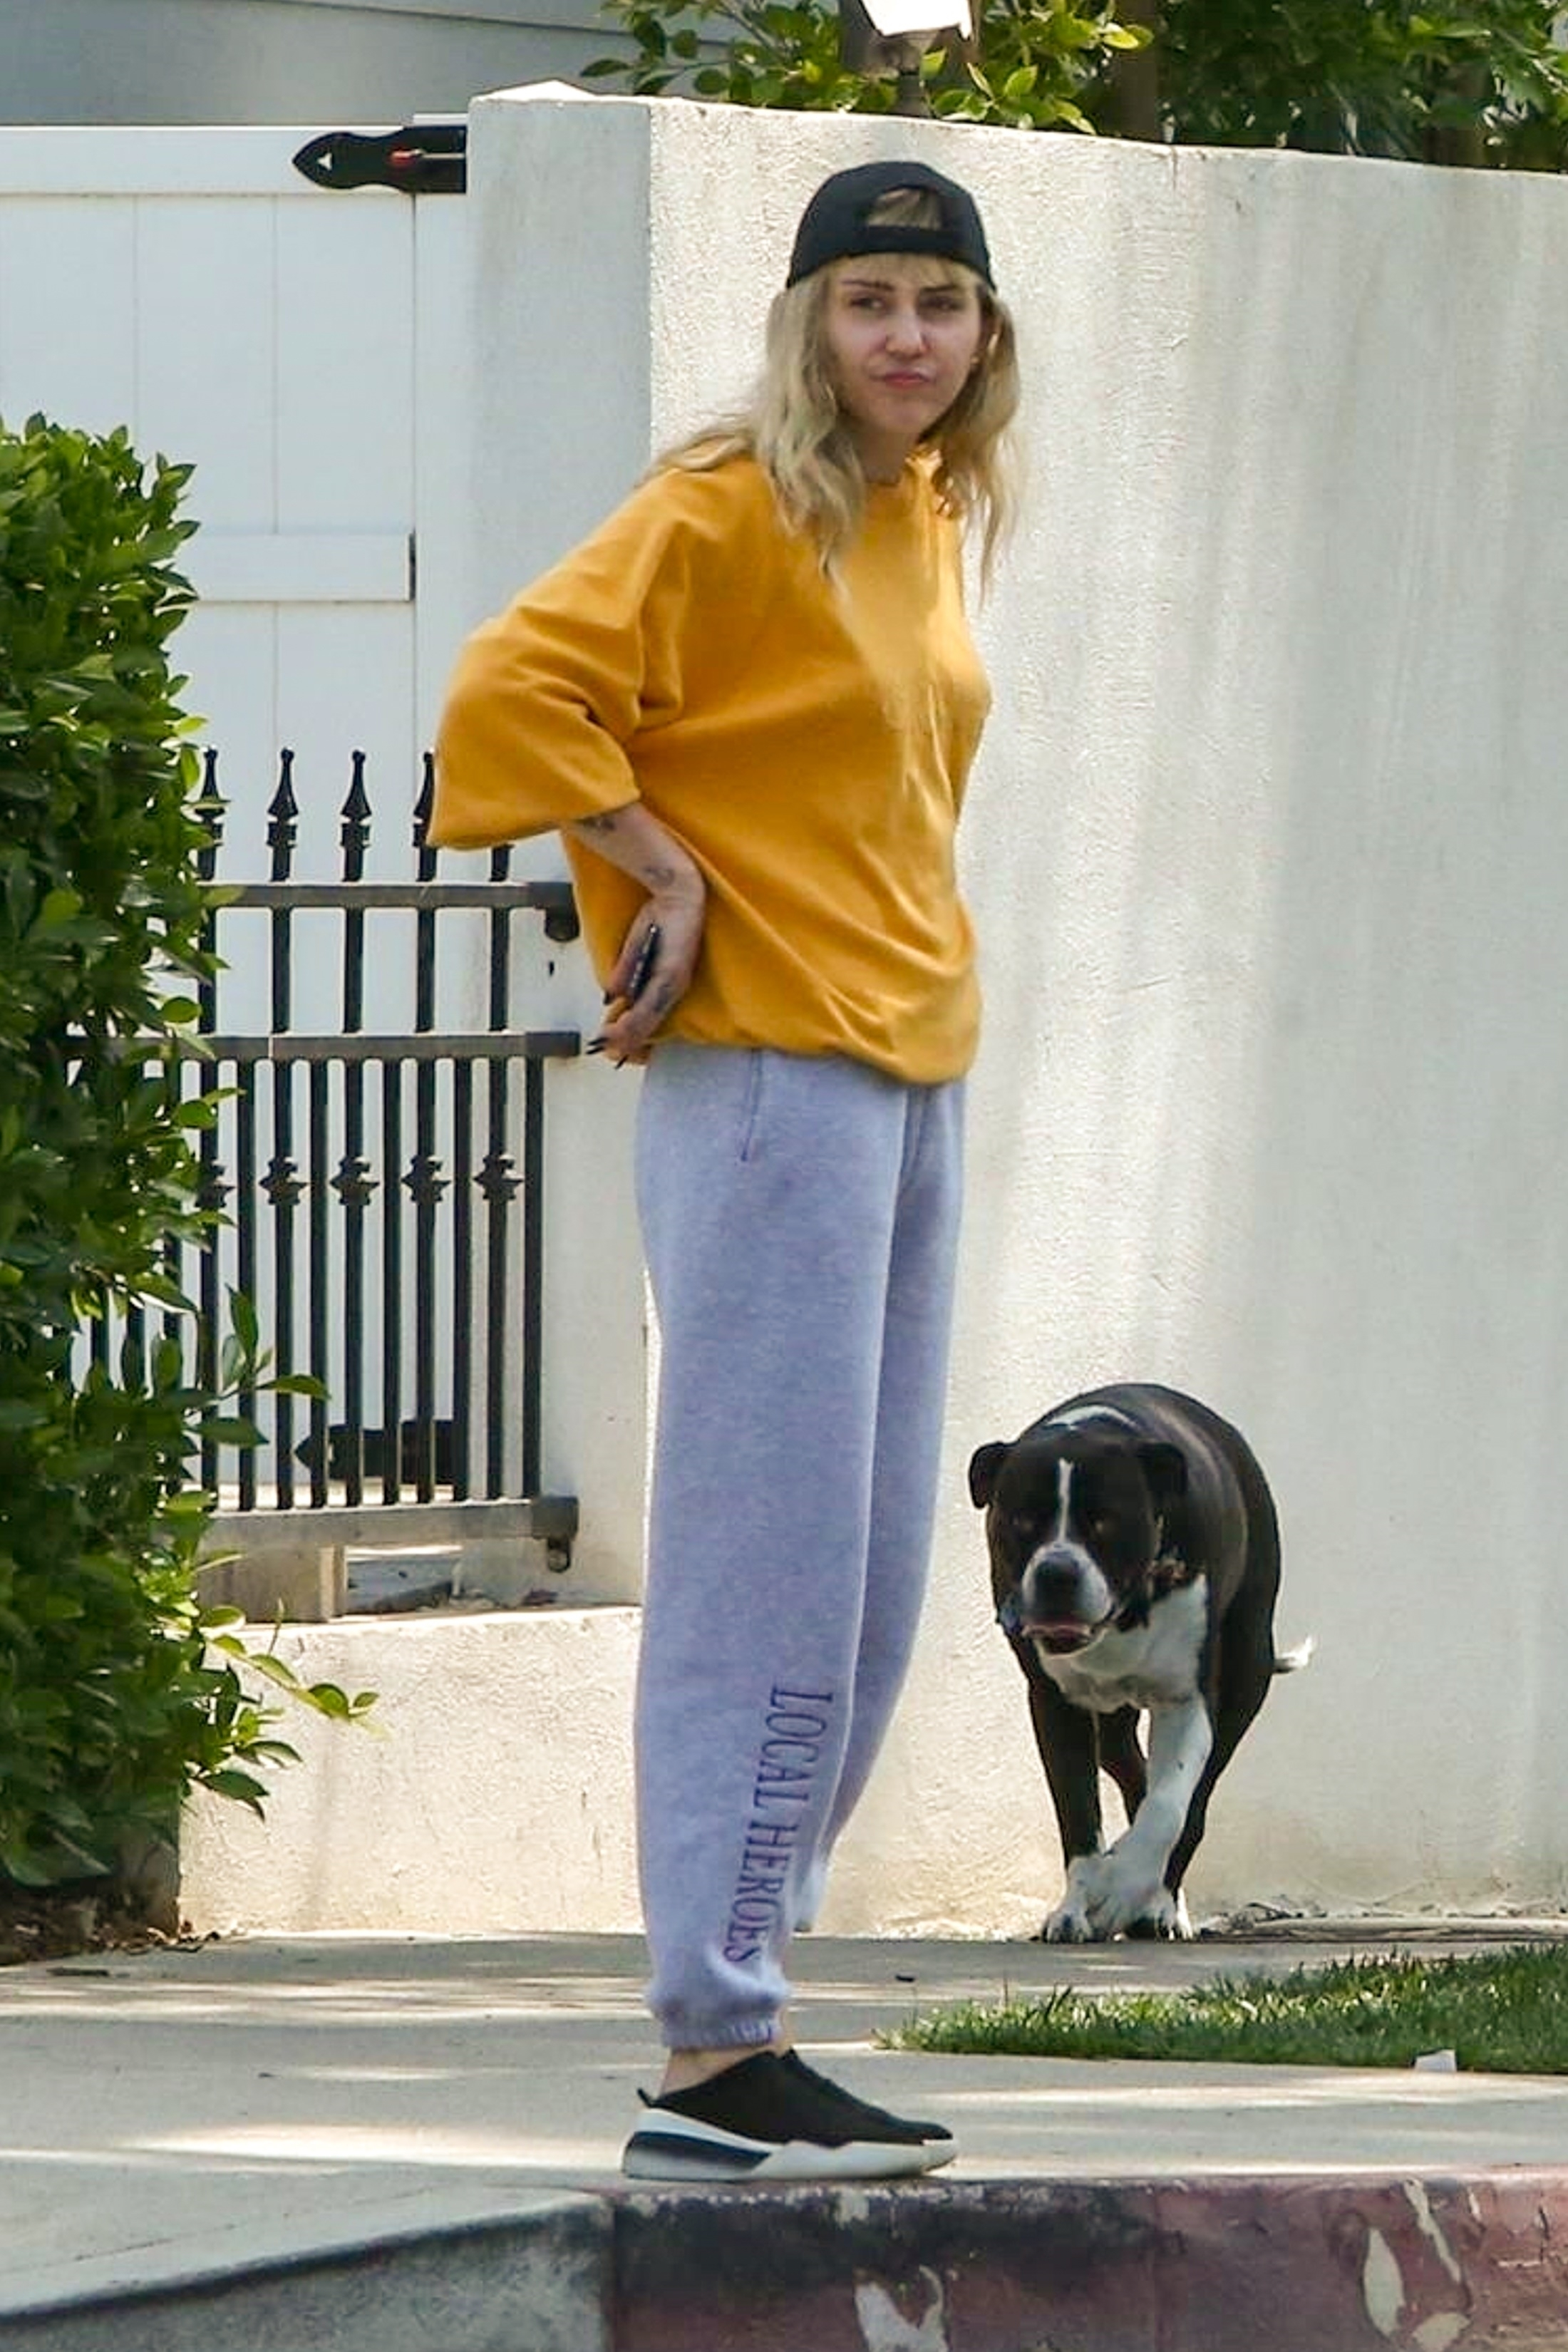 Miley Cyrus went casual for a quick walk around the block with her dog in Los Feliz, CA on June 5, 2019.